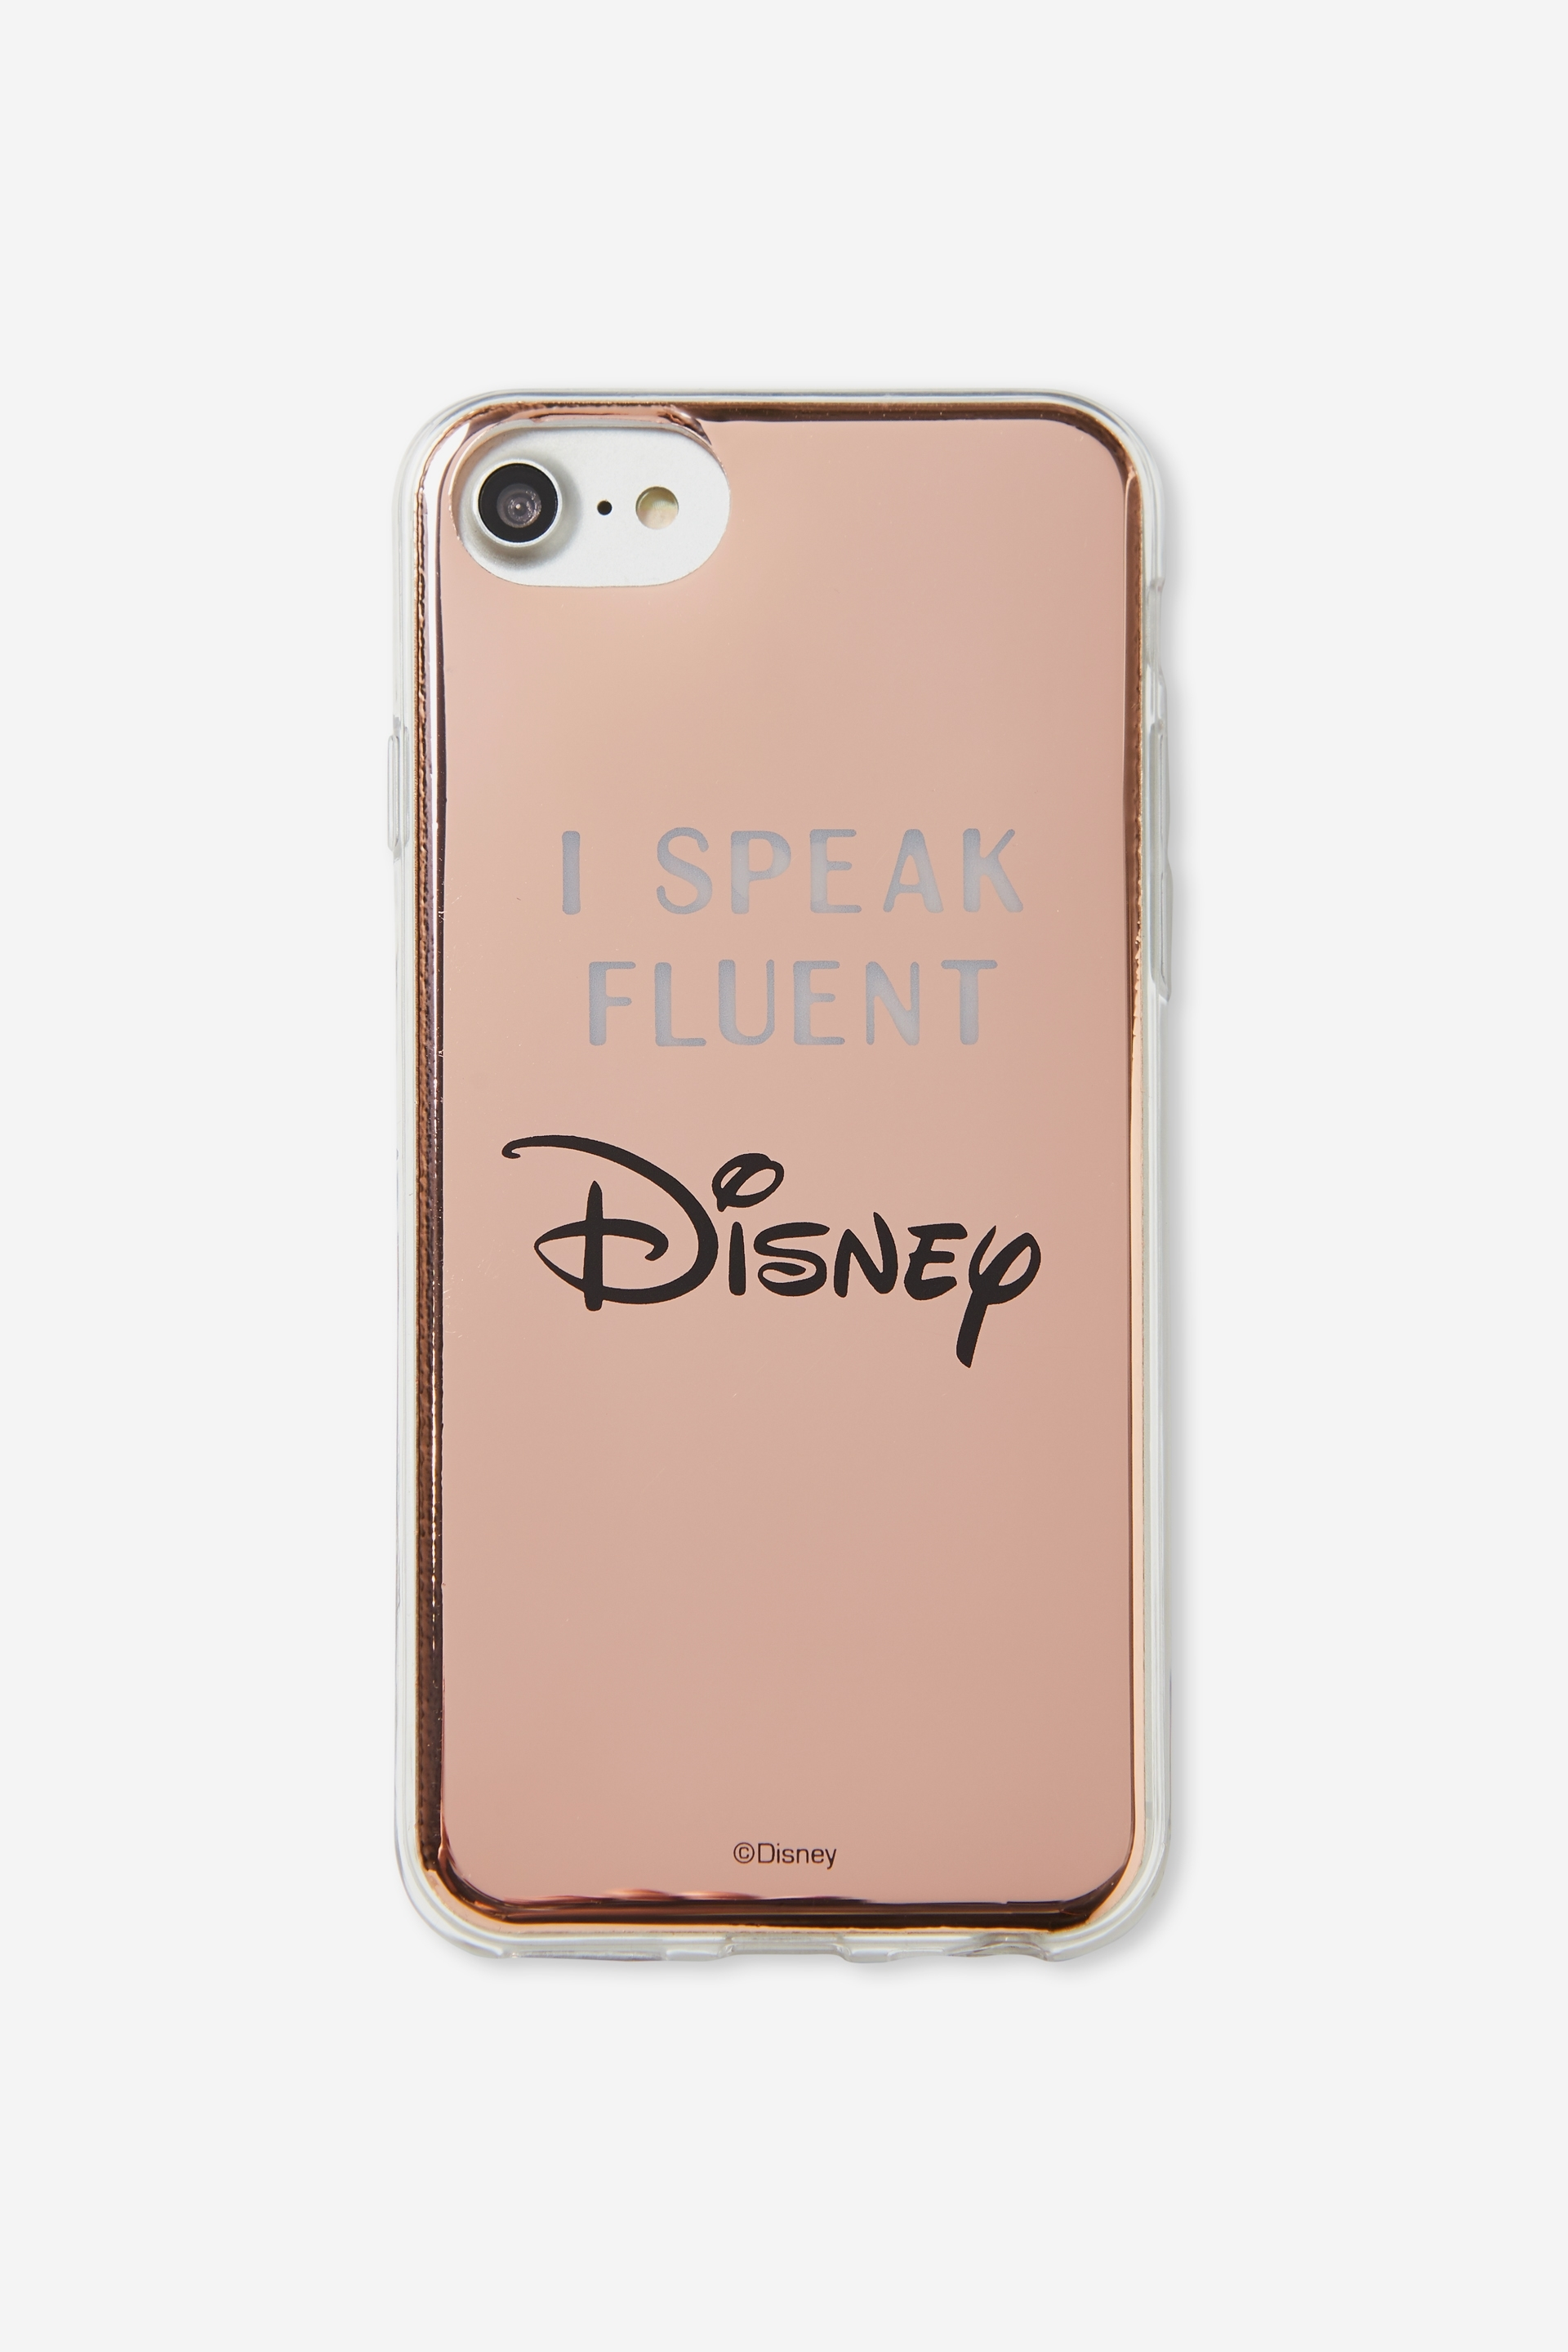 Typo - Printed Phone Cover Universal 6,7,8 - Lcn fluent in disney 9352403638573